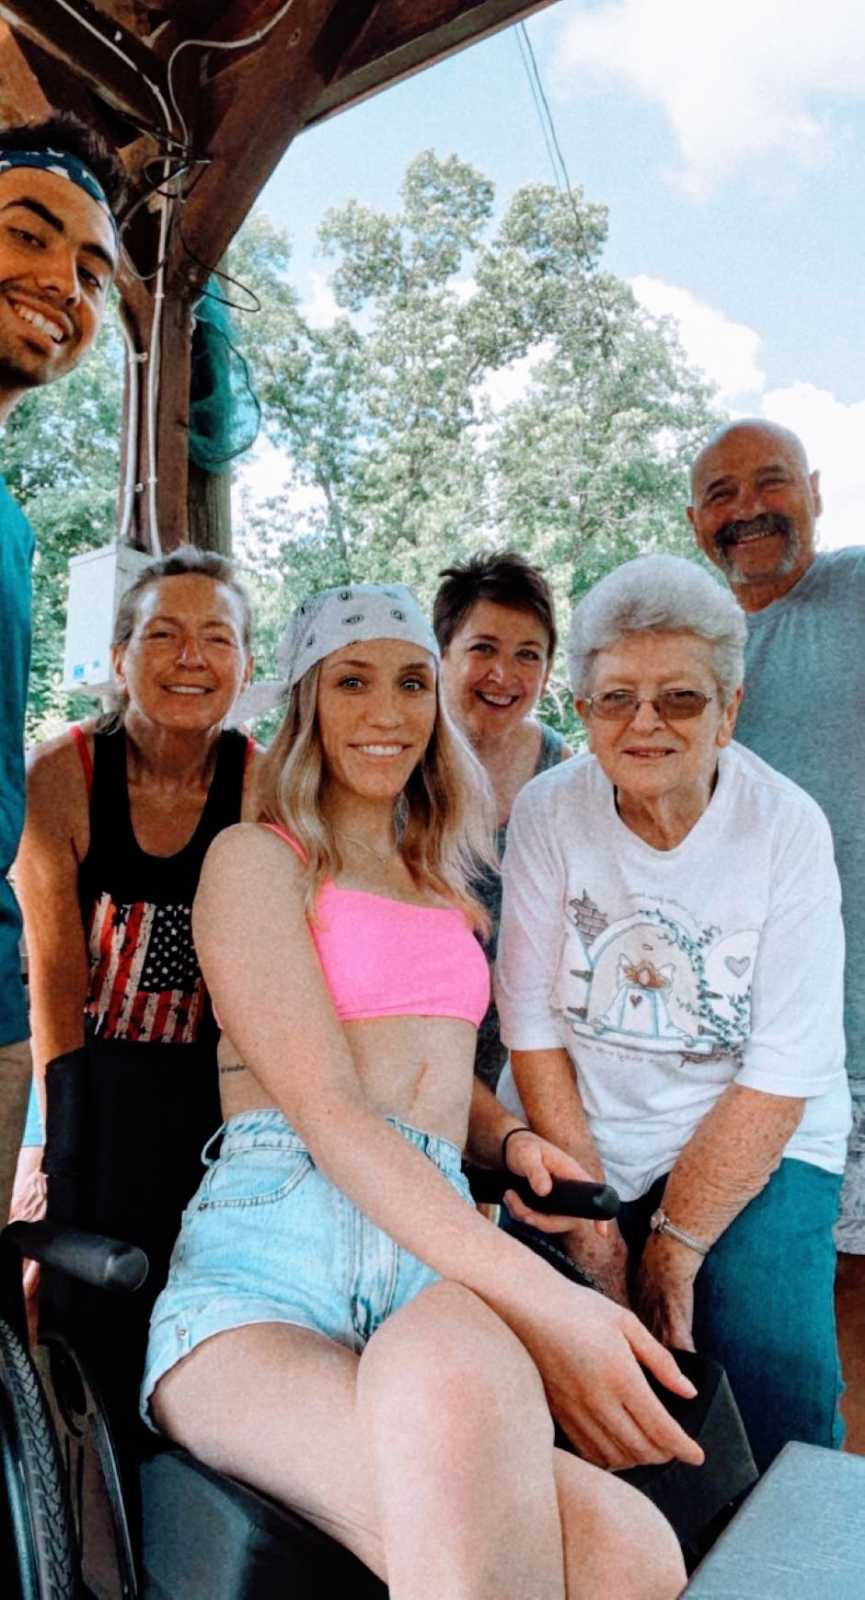 Woman wheelchair bound after tragic car accident takes a photo with her family